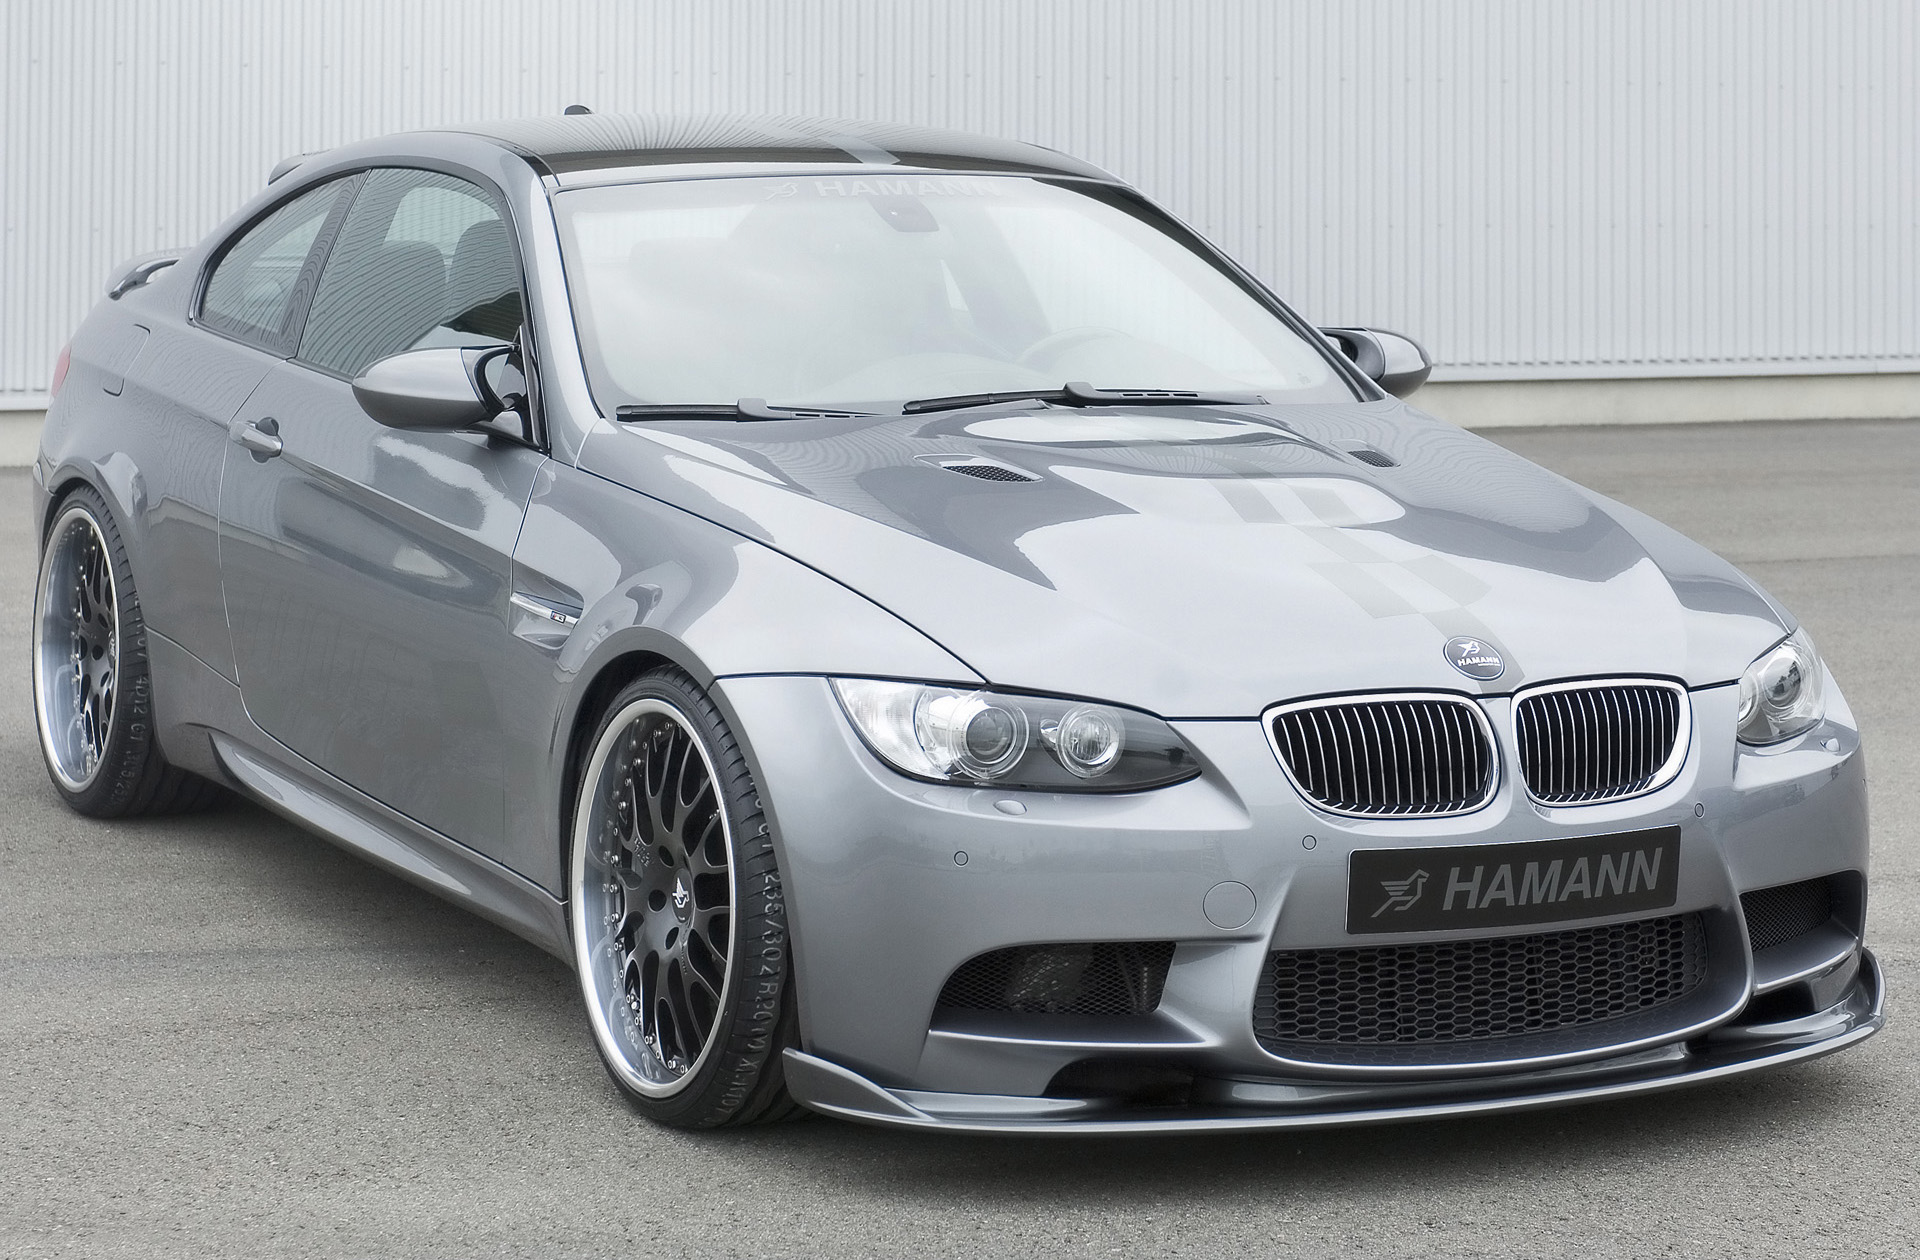 Bmw Hamann X wallpapers Wallpapers Wallpapers and Backgrounds